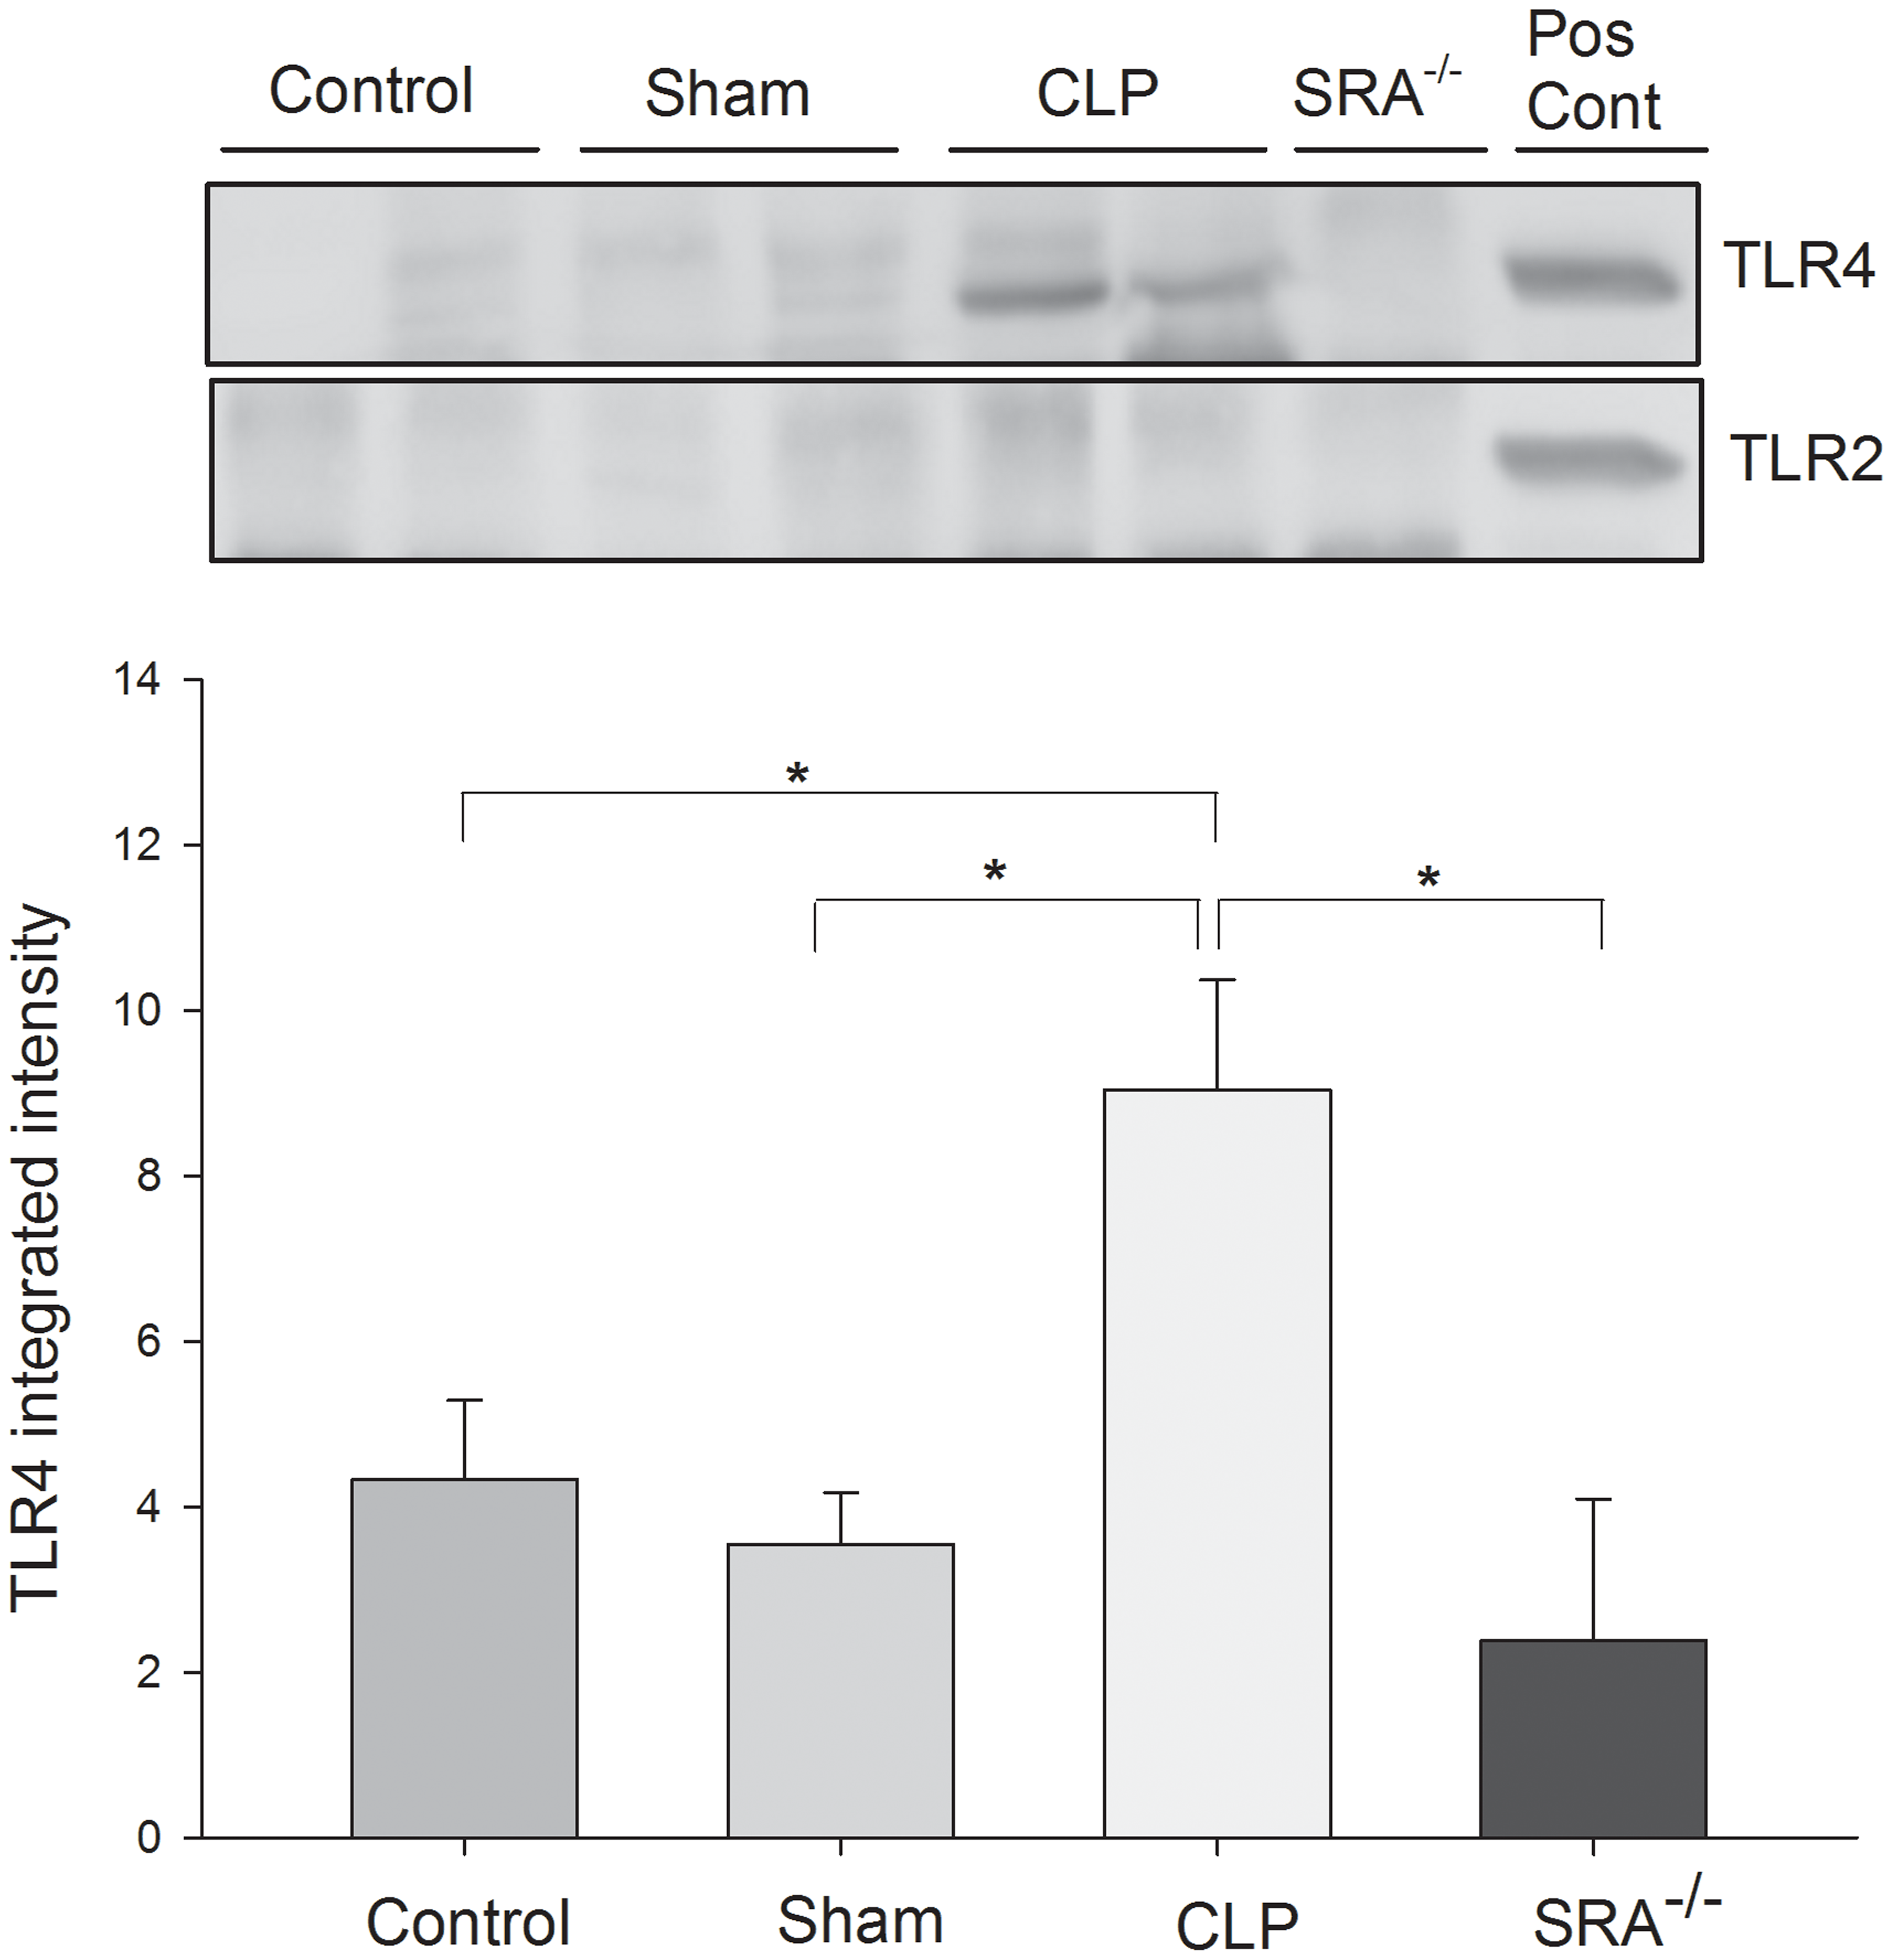 SRA co-associates with TLR4, but not TLR2, in lungs of wild type CLP mice.